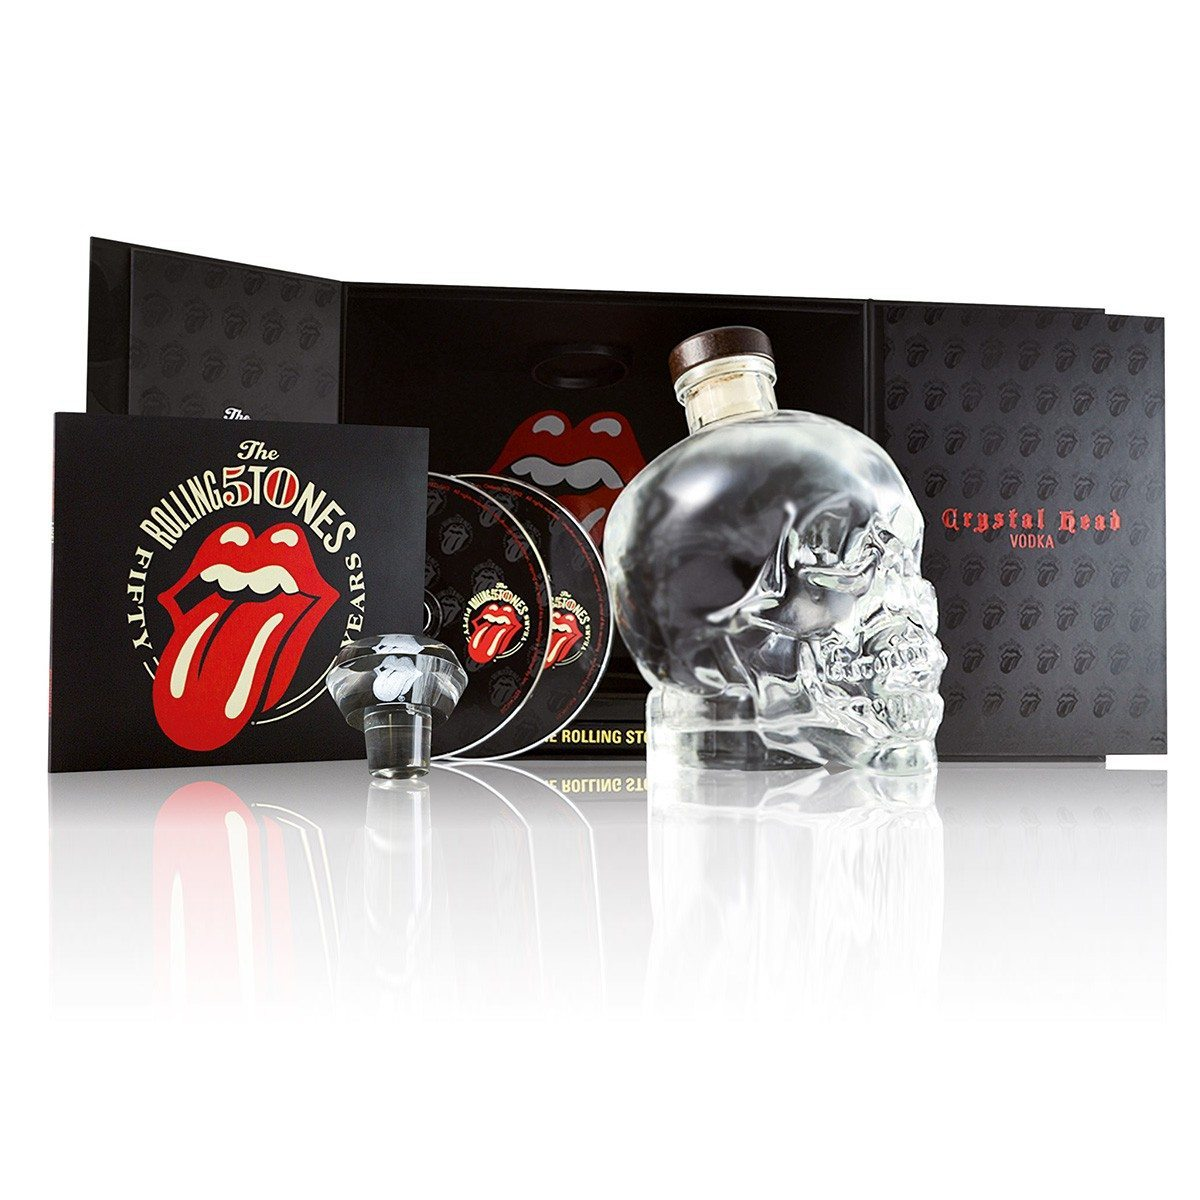 Coffret Rolling Stones – Crystal Head Vodka